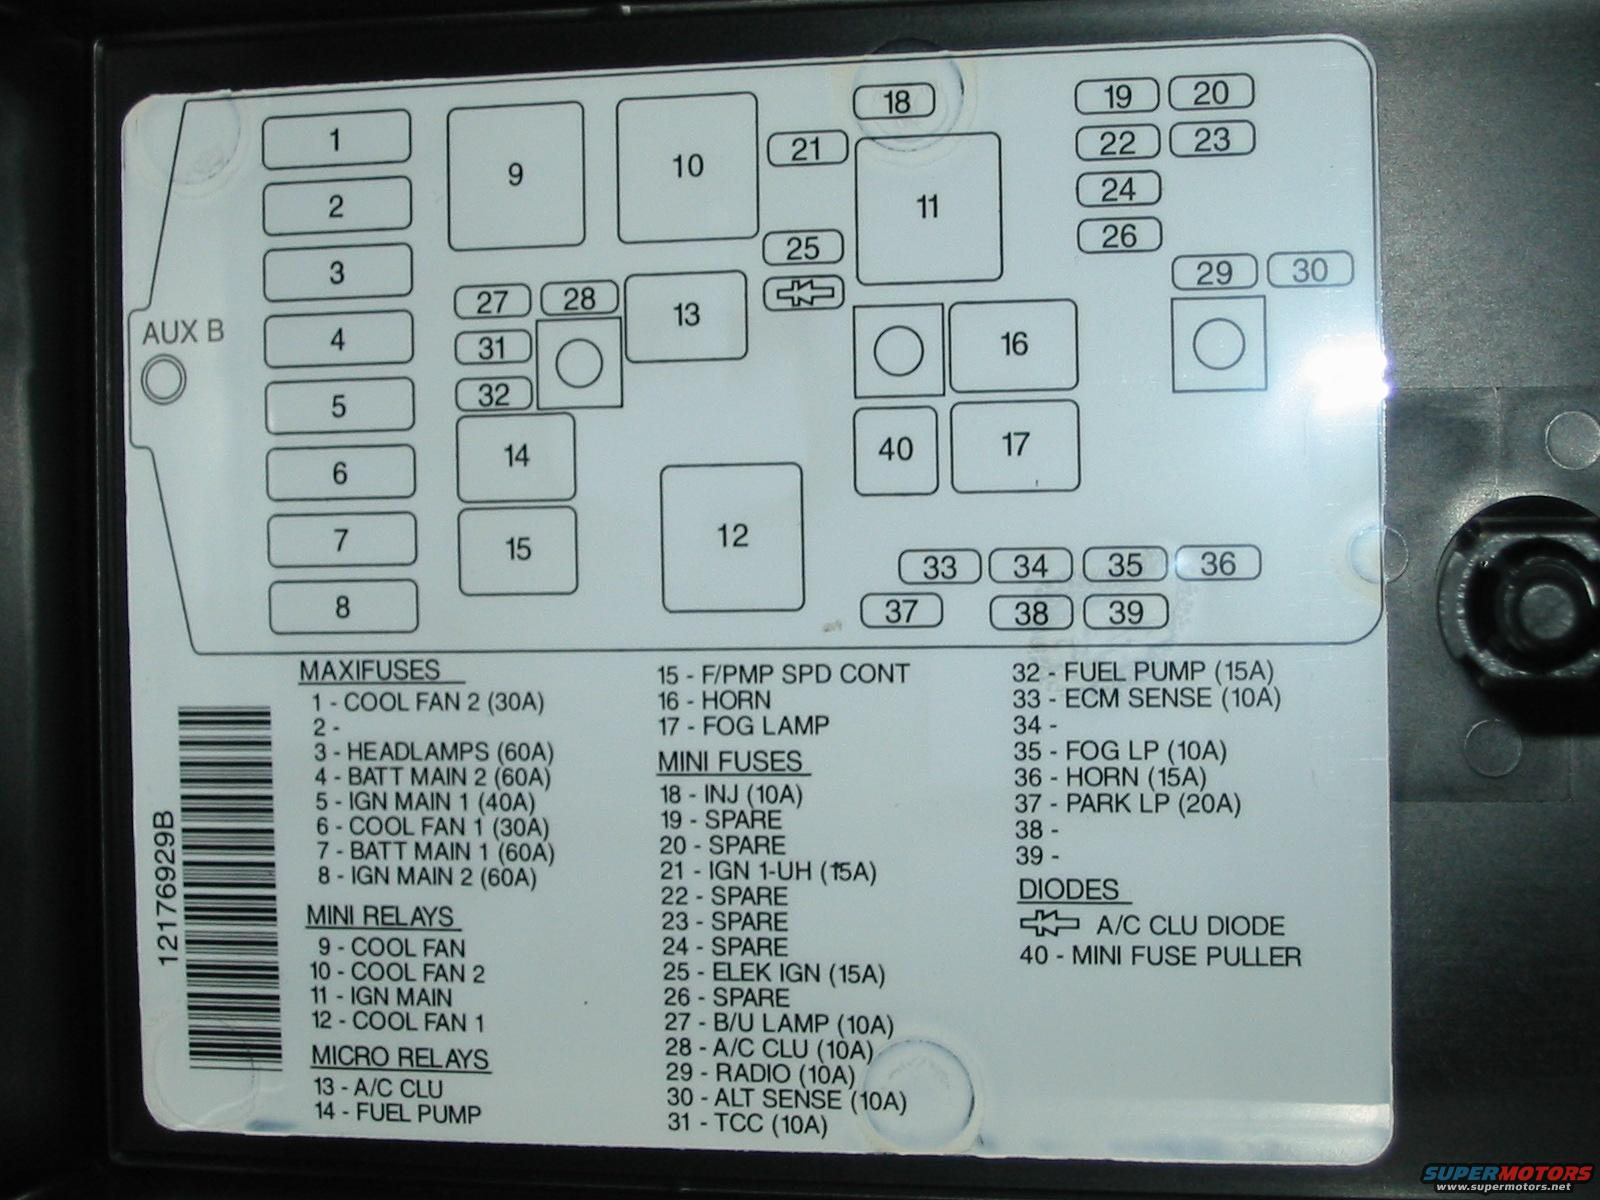 hight resolution of 1997 peterbilt fuse box diagram wiring diagrams bib 1997 peterbilt fuse box diagram